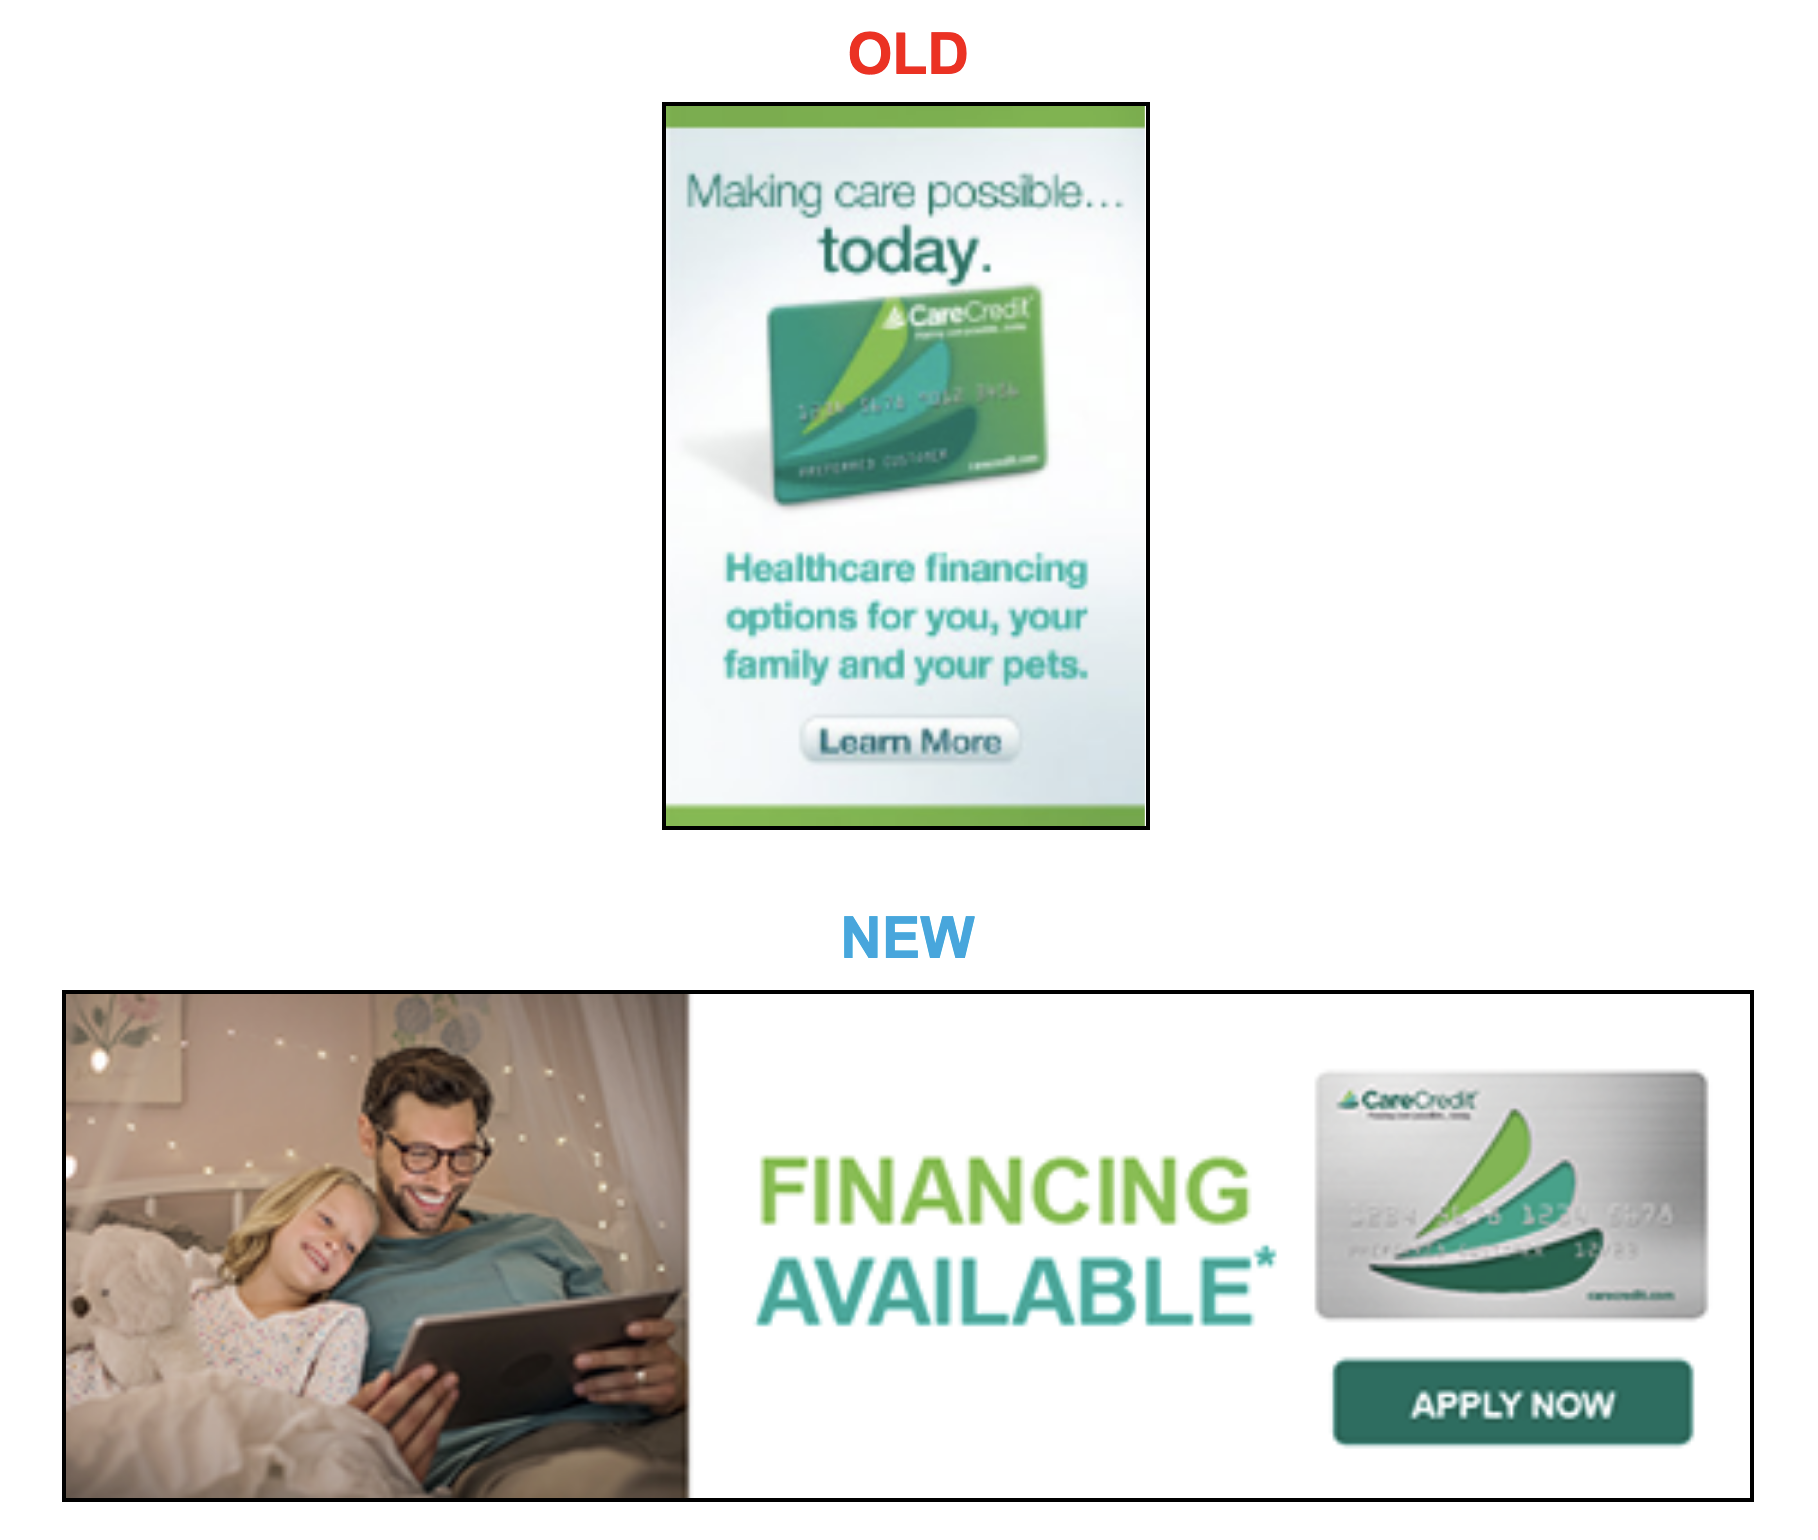 more examples of old and new CareCredit images for all verticals